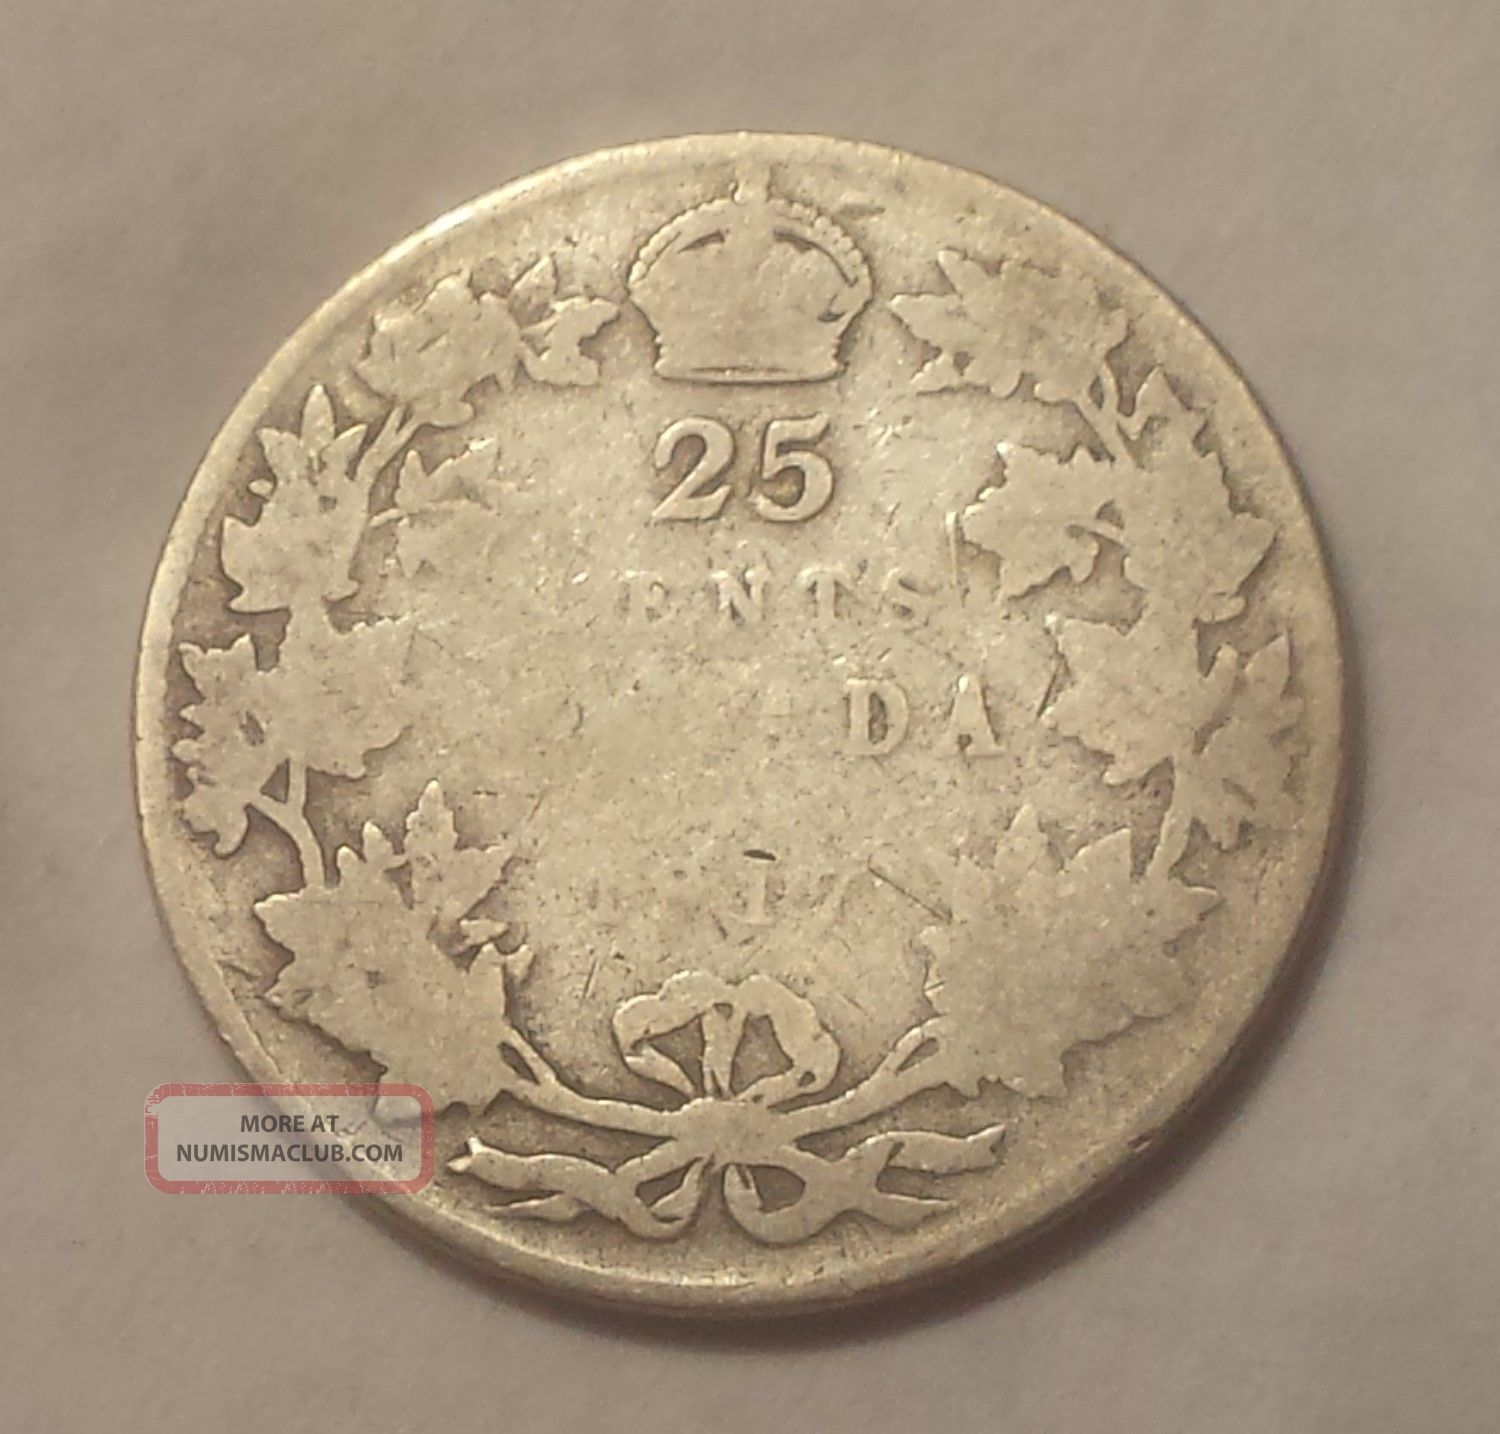 1917 Canada 25 Cents Coin (92.  5 Silver) - King George V Coins: Canada photo